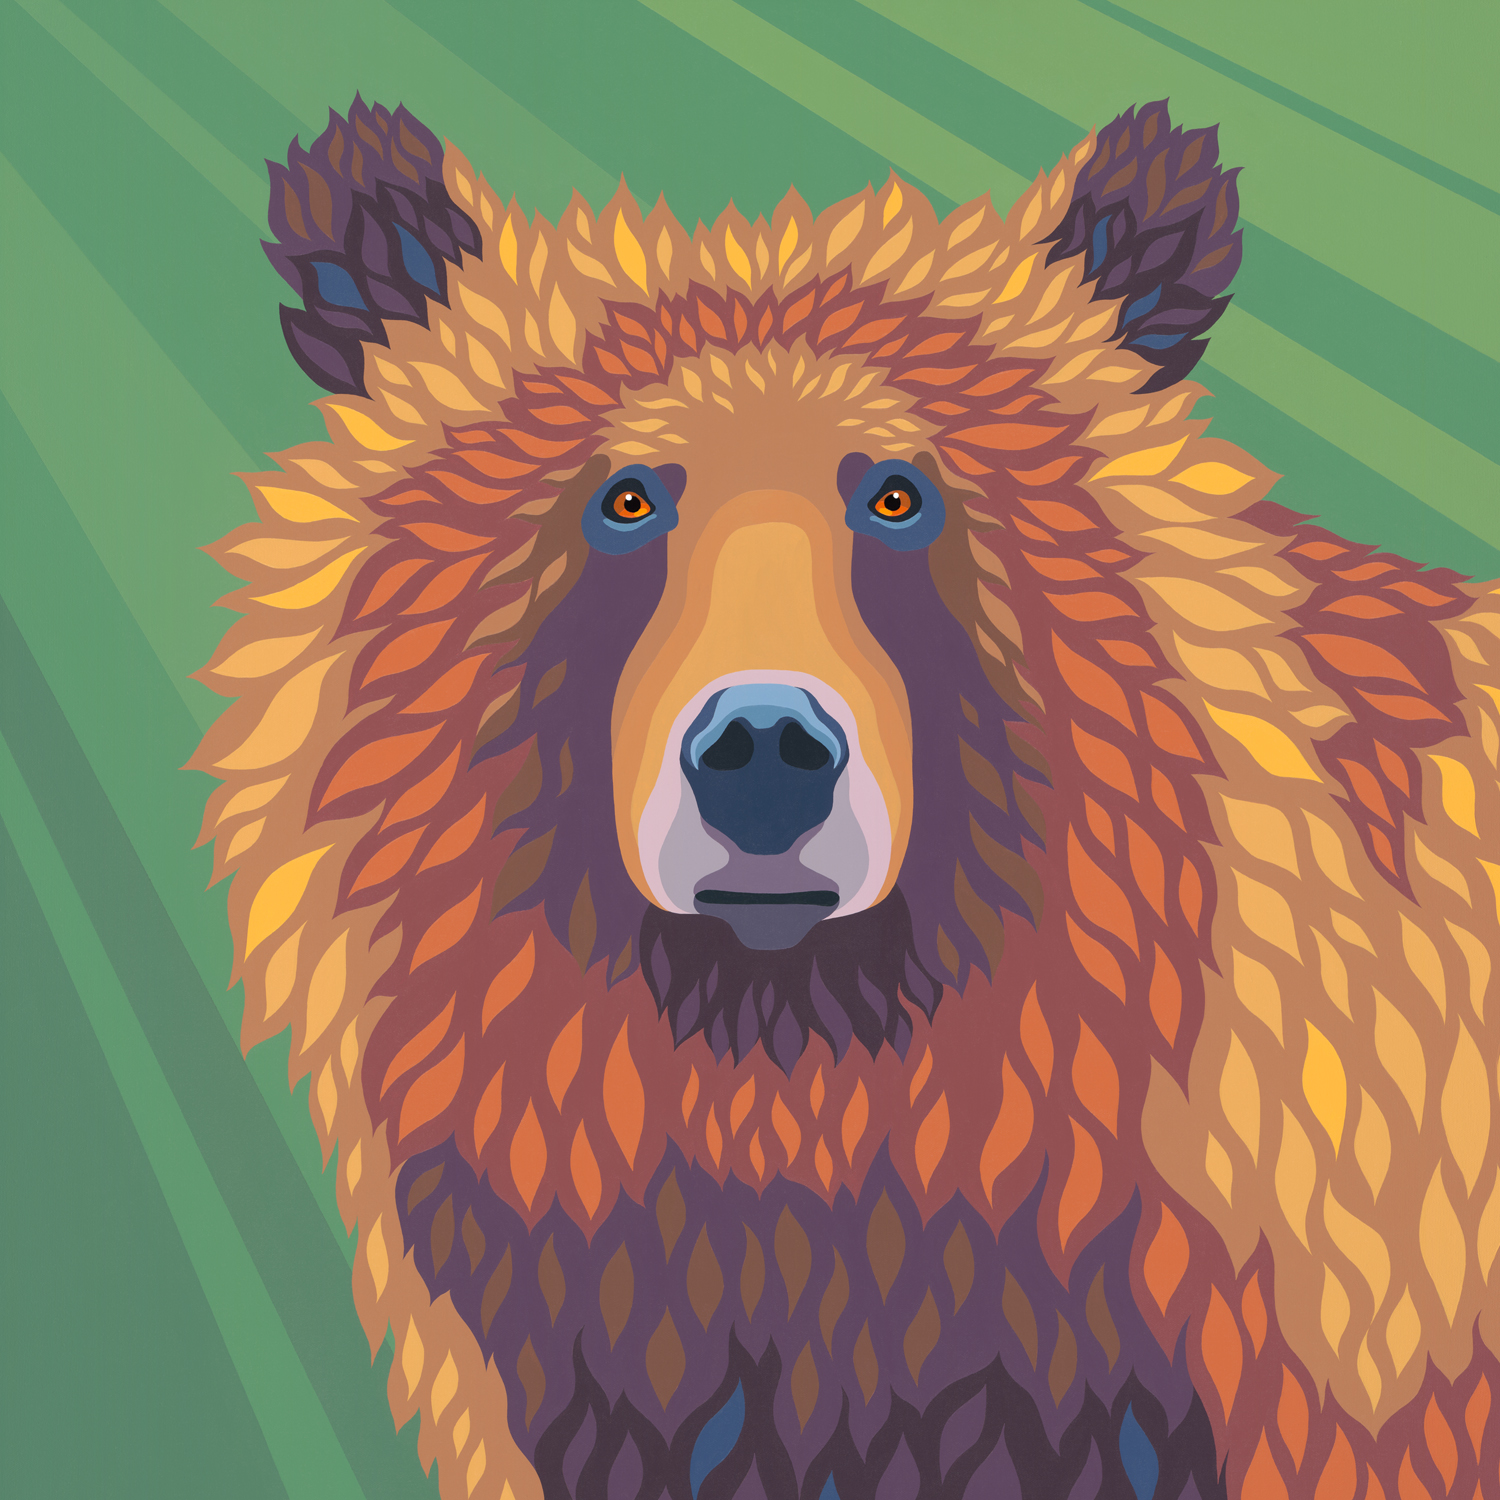 """'Golden Grizzly' - Di - 2018 - 36""""x36"""" - (sold)"""